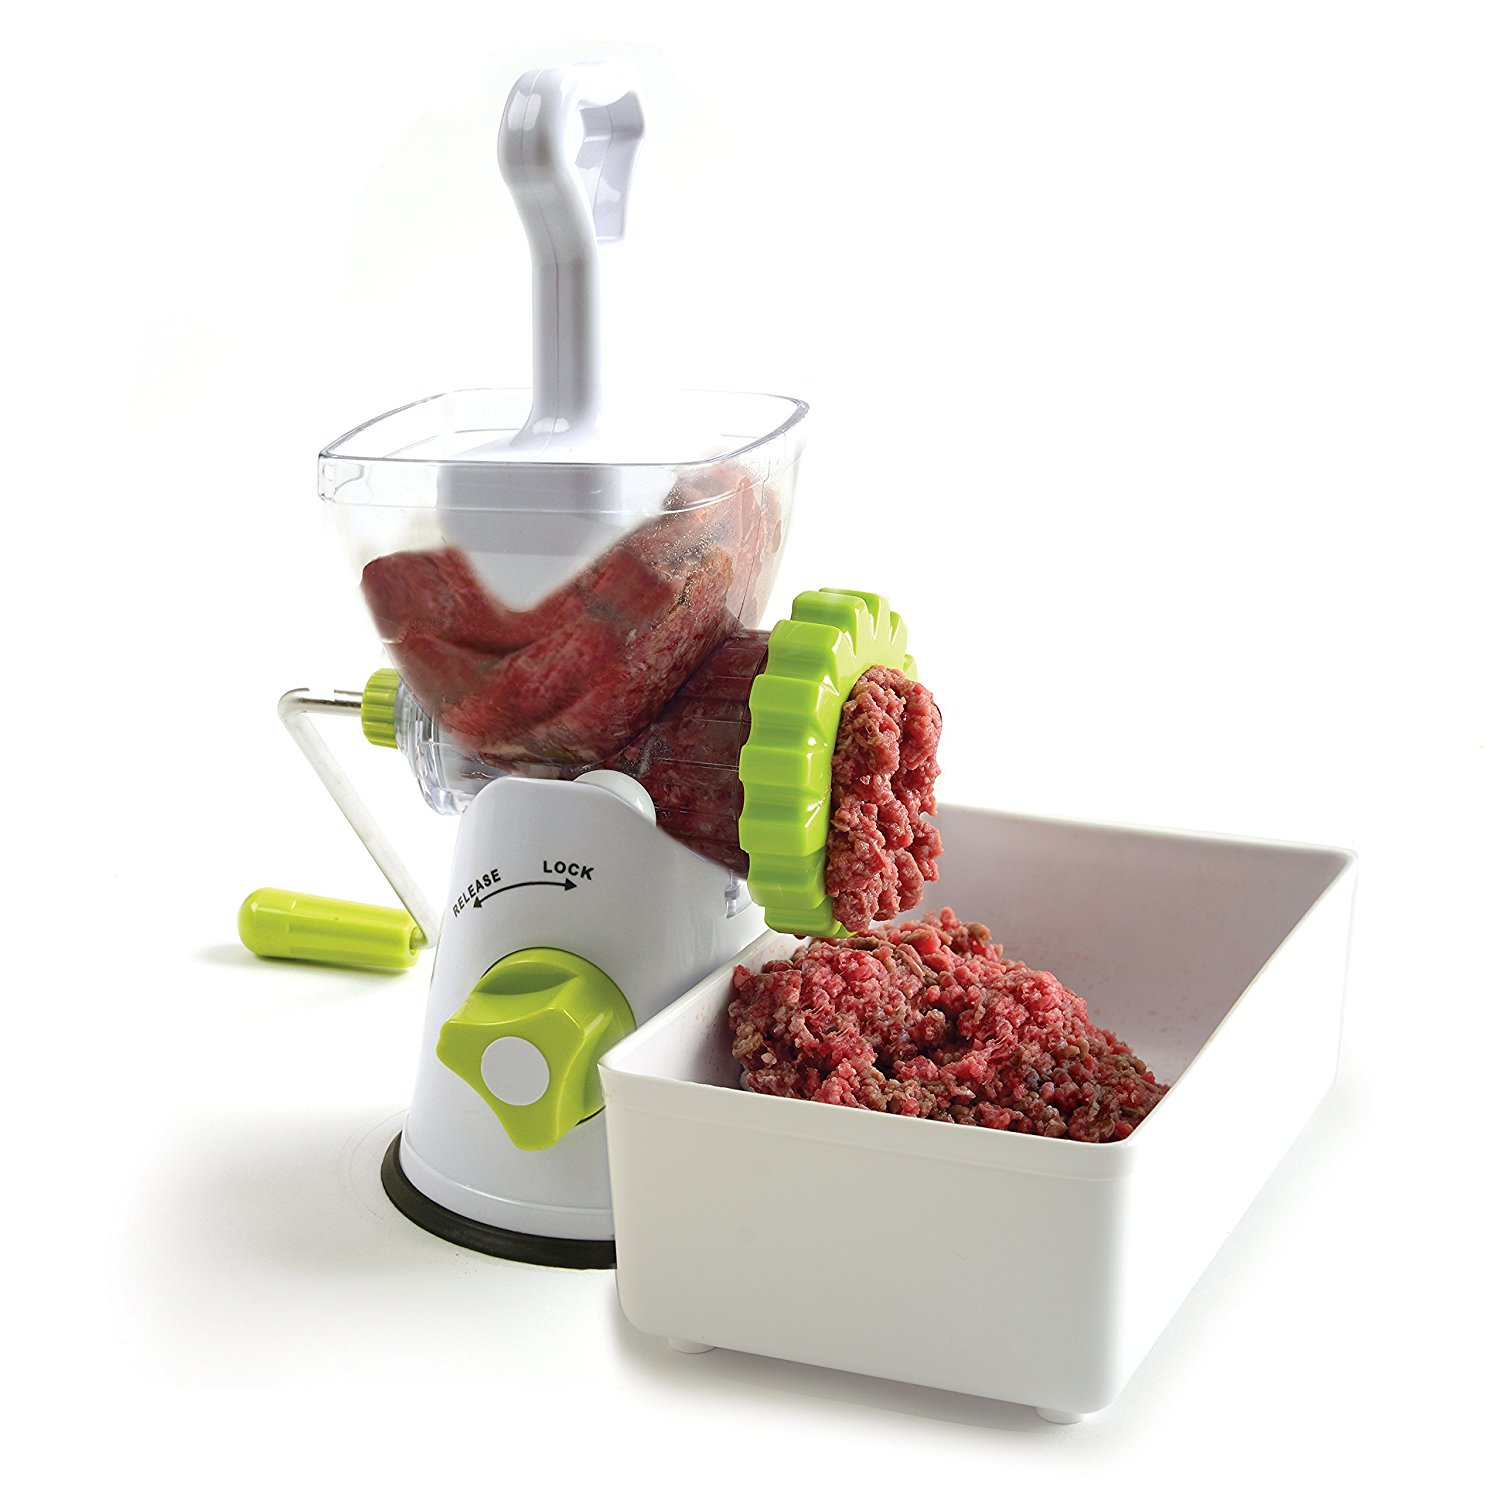 Meat Grinder, Mincer, and Pasta Maker